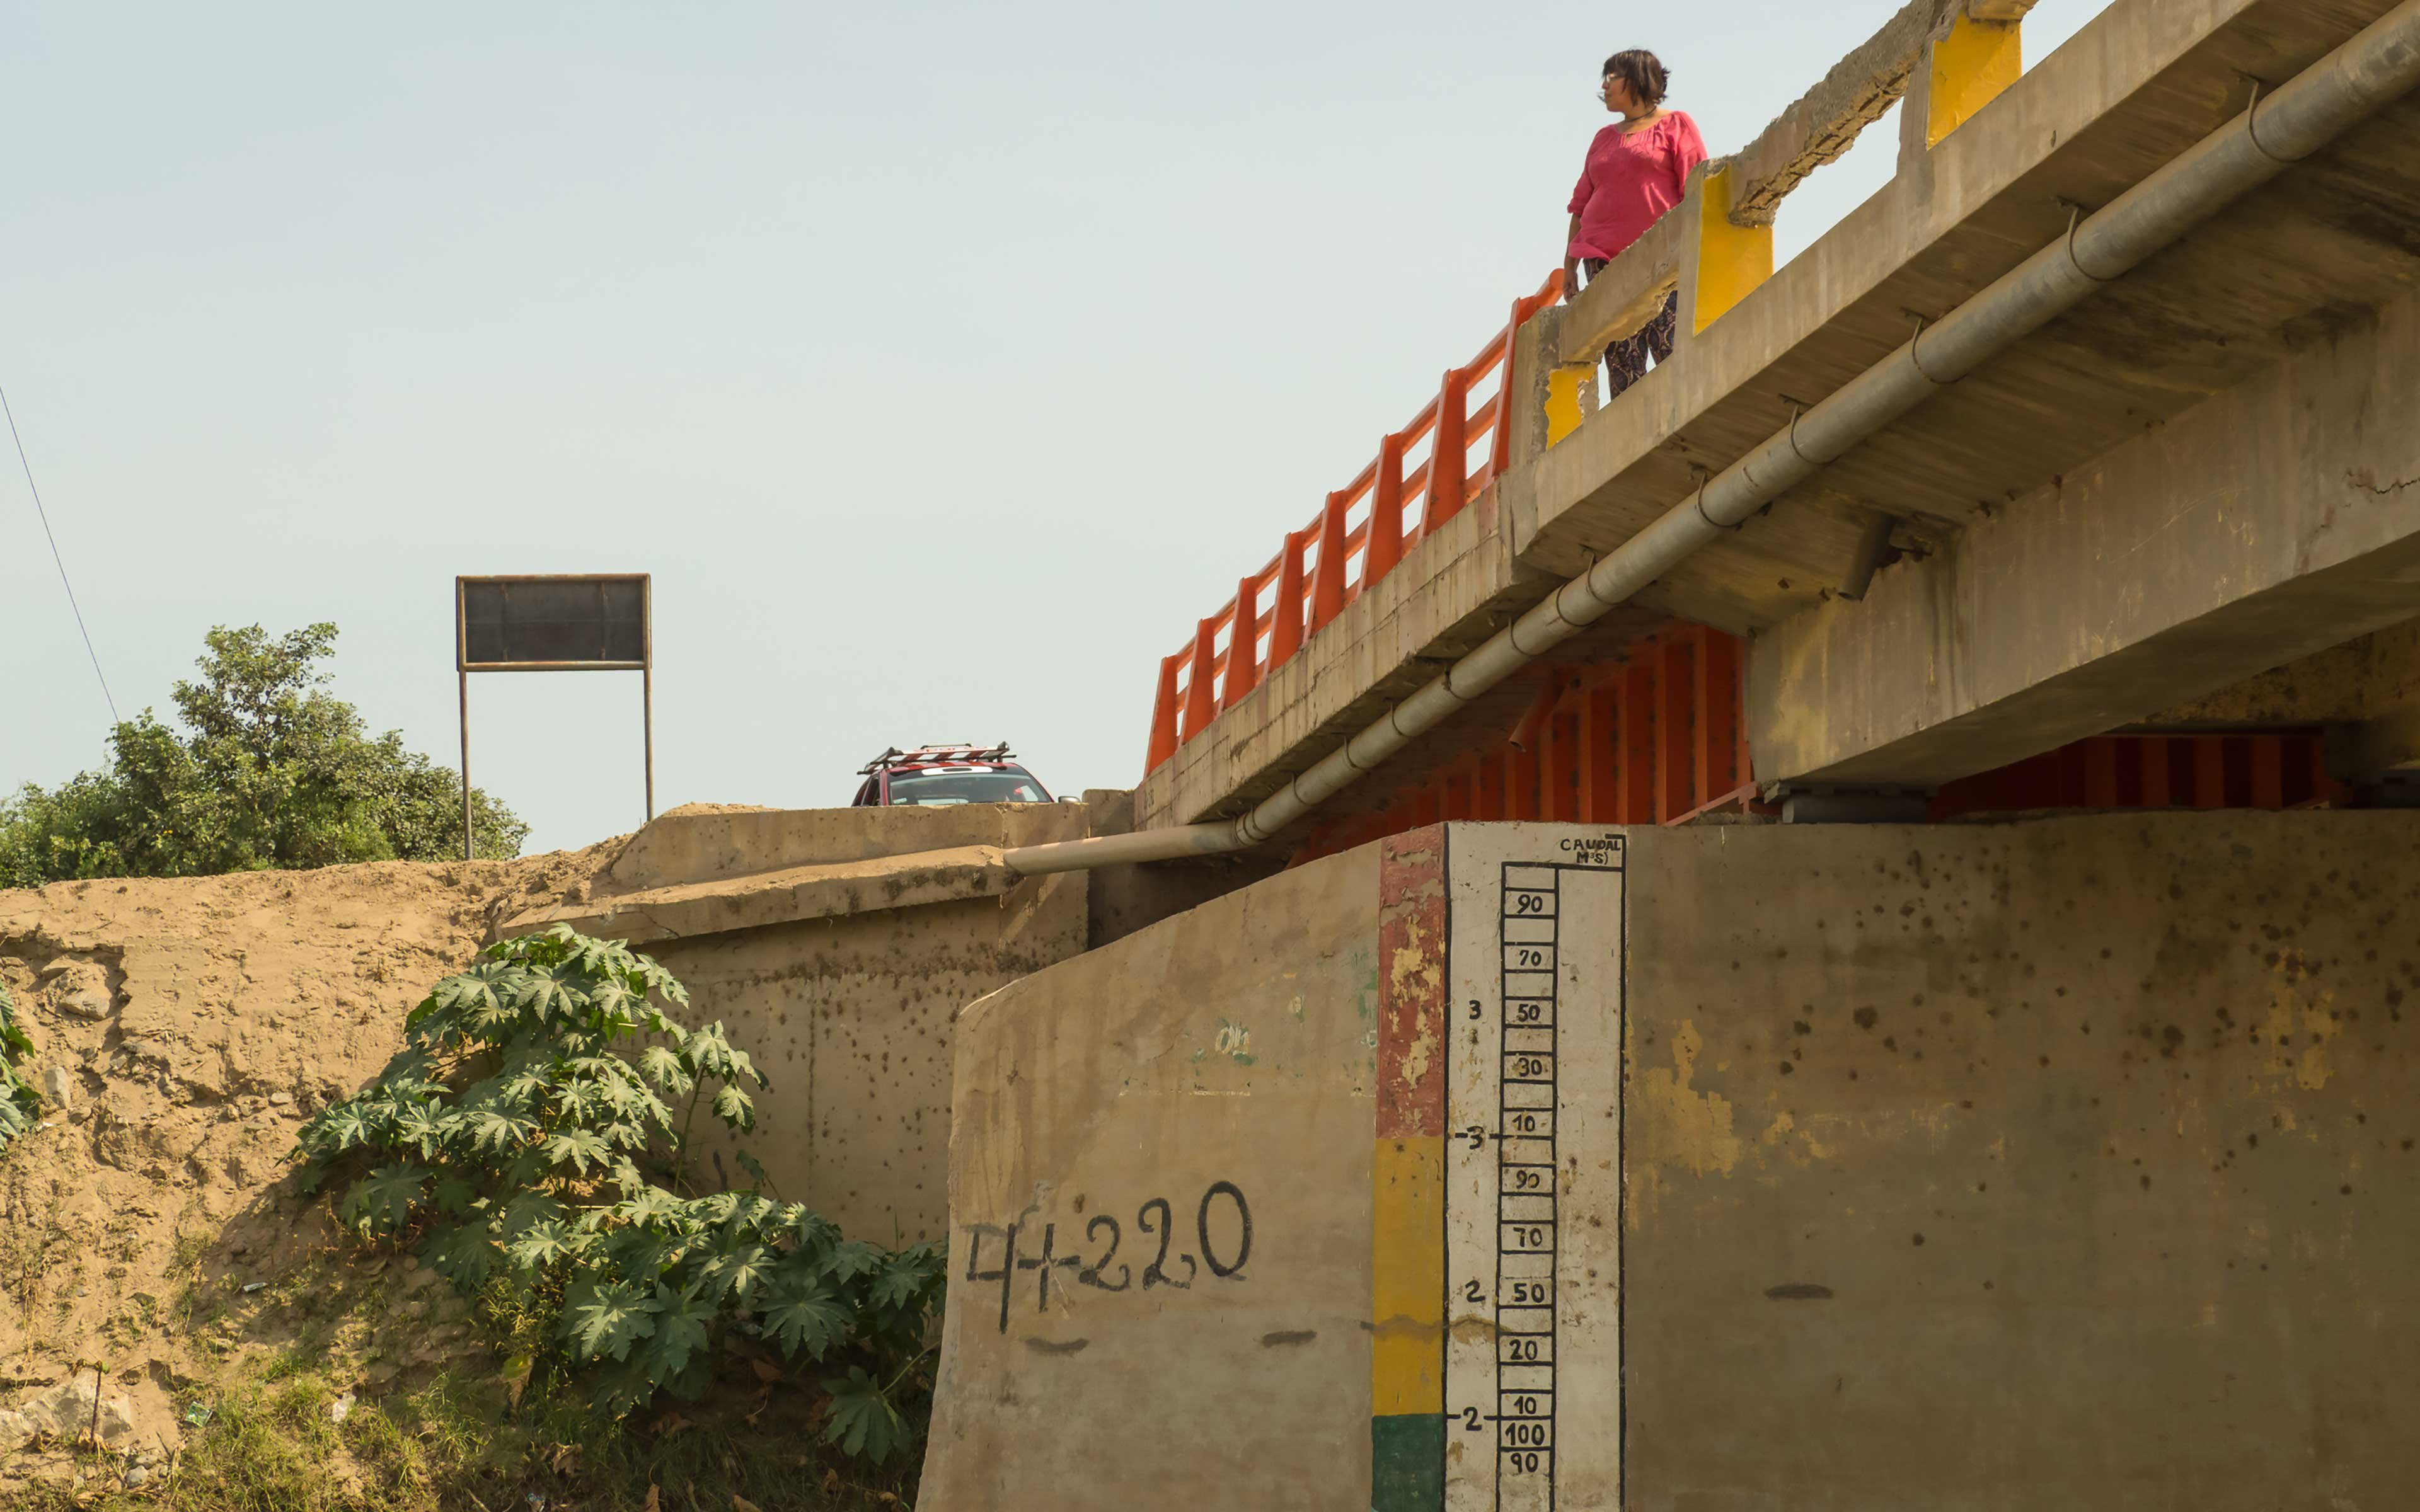 Rosa Rivero stands on a bridge over the La Leche river. Measurements painted on the bridge are part of the Las Juntas flood early warning system.